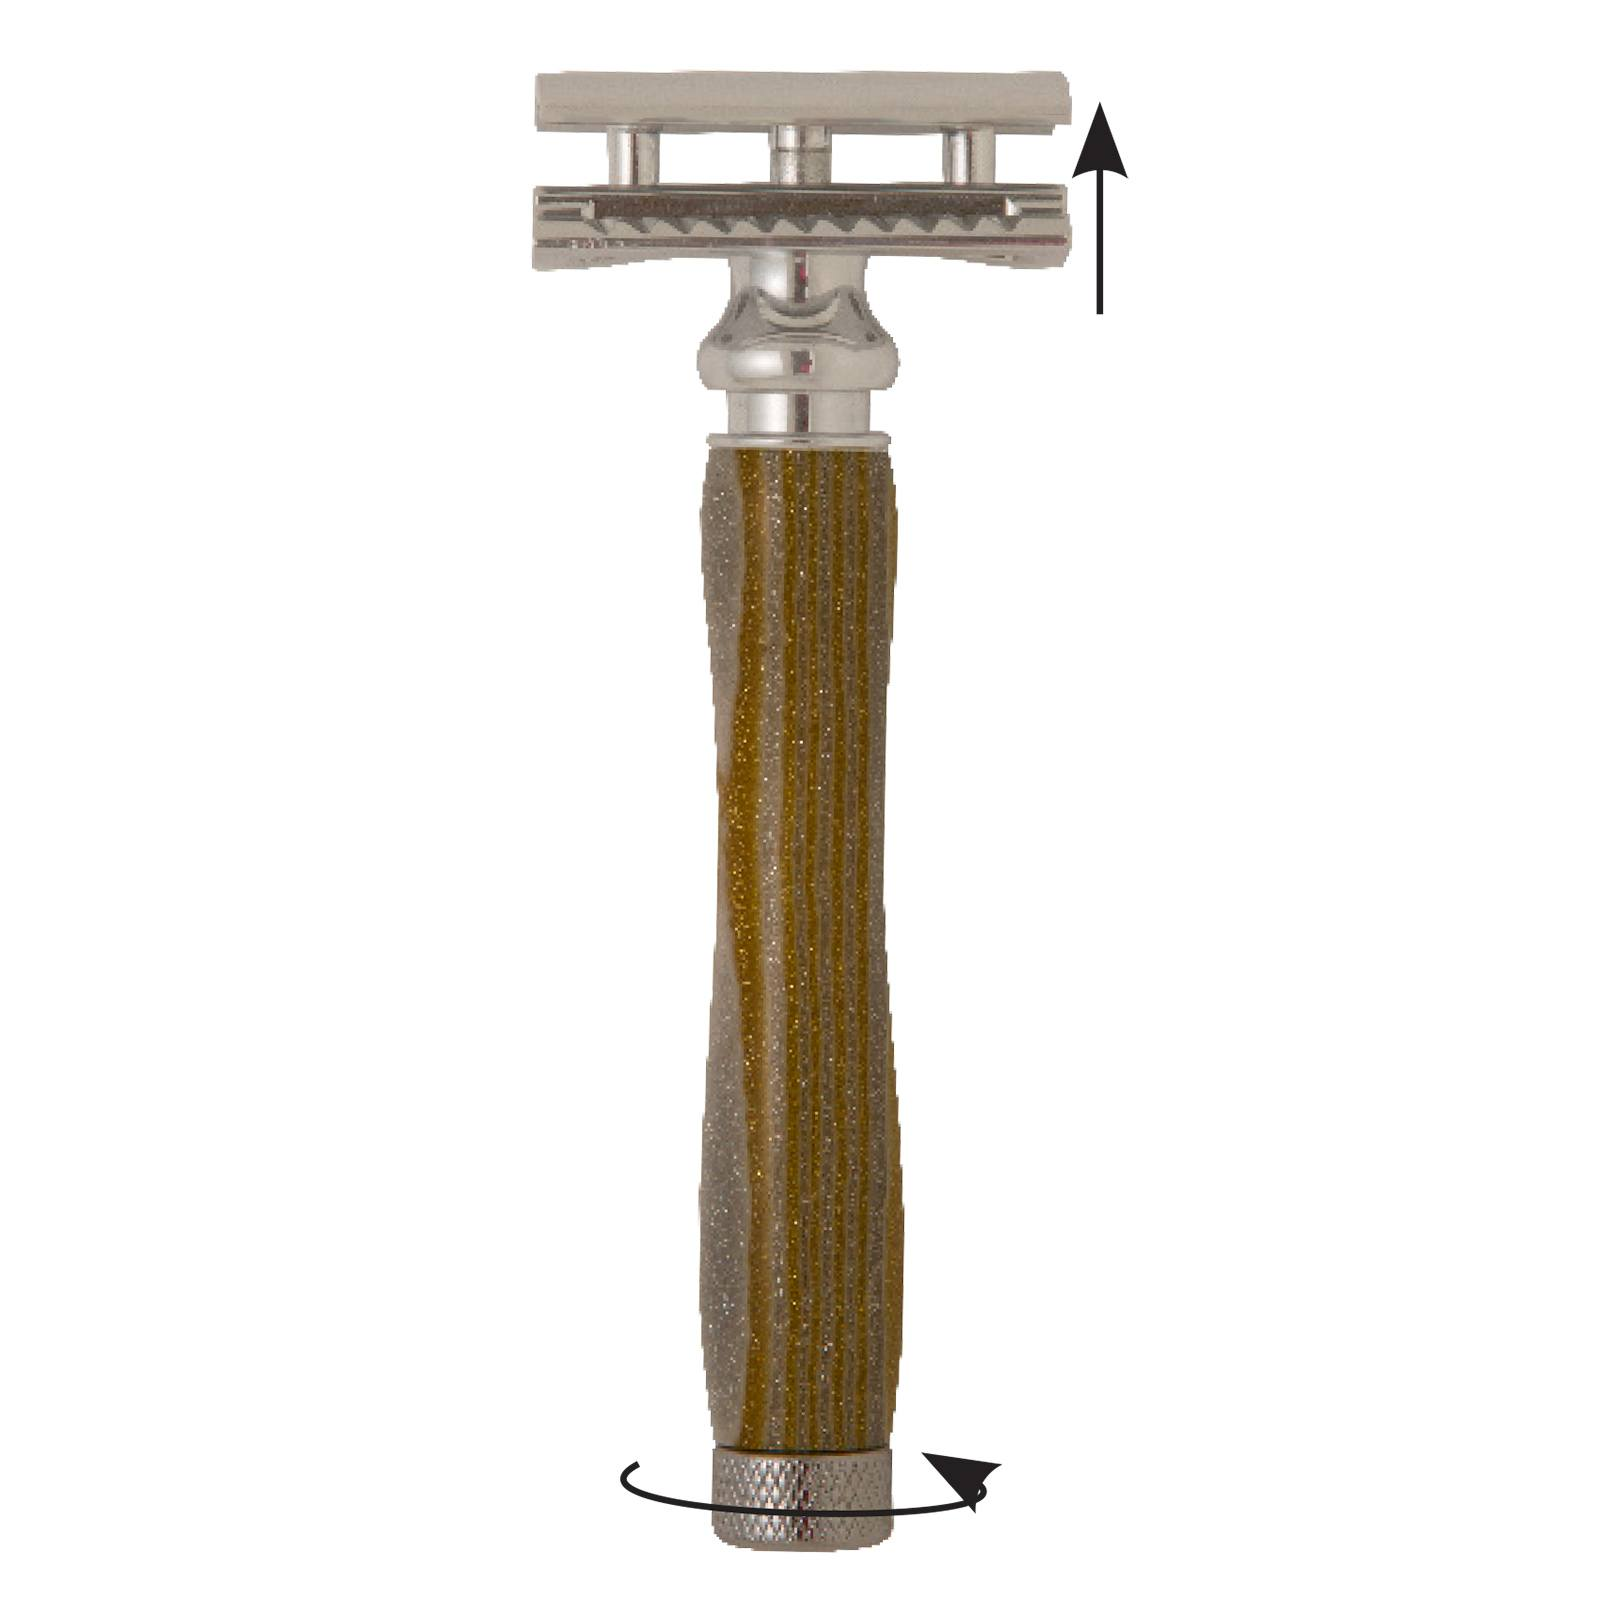 Speed Dial Safety Razor Kit At Penn State Industries